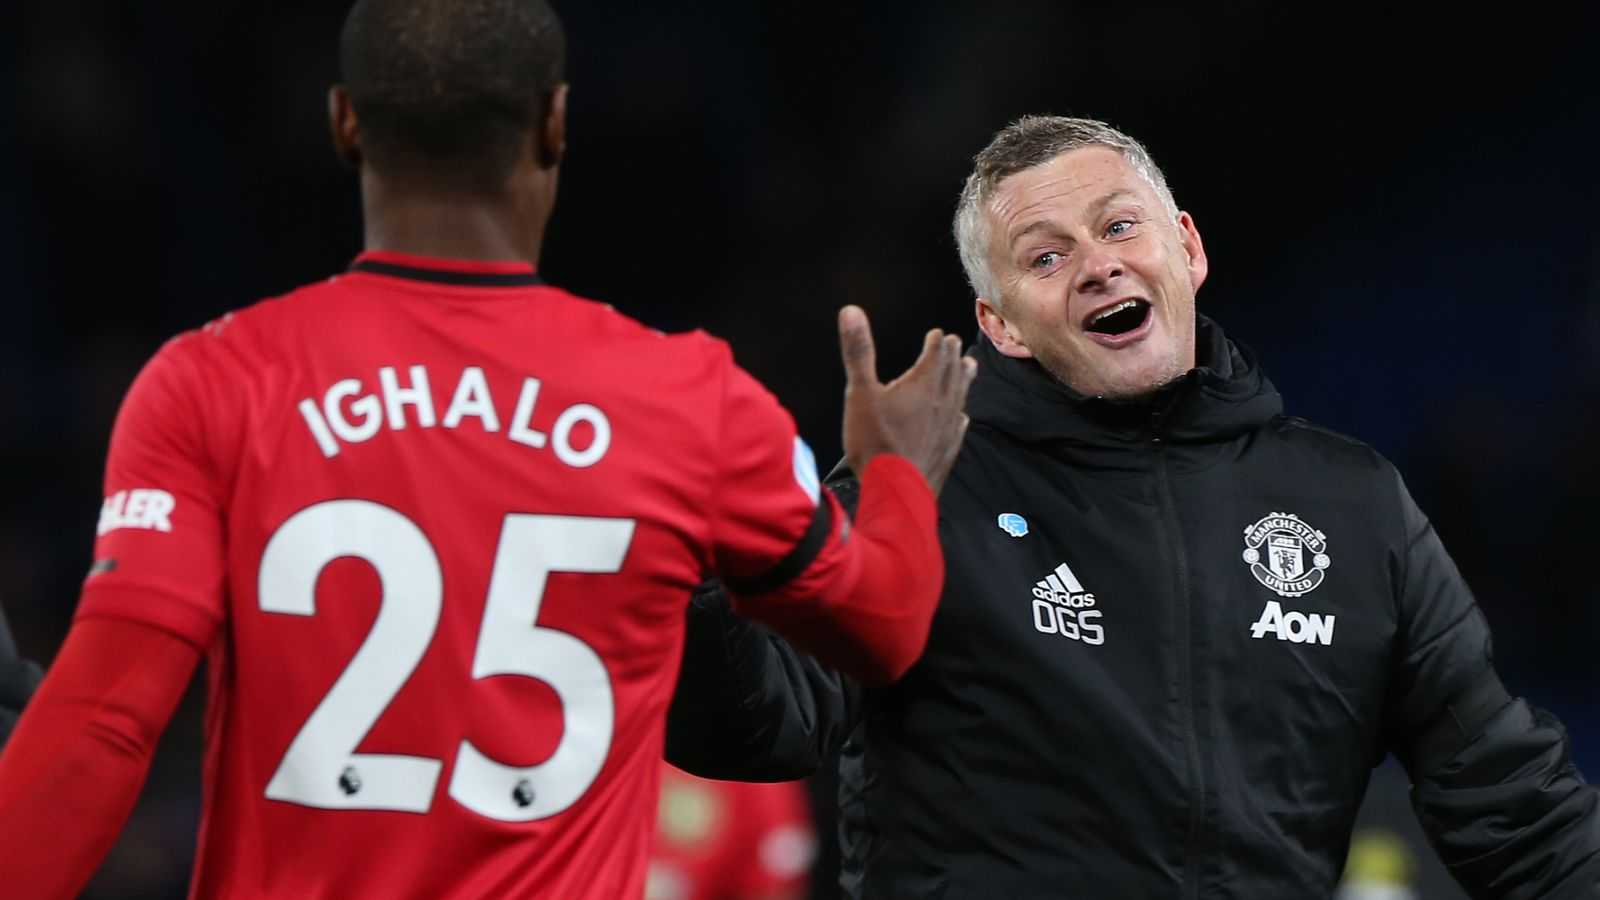 Manchester United reporter notebook: Mood lifted after victory at Chelsea